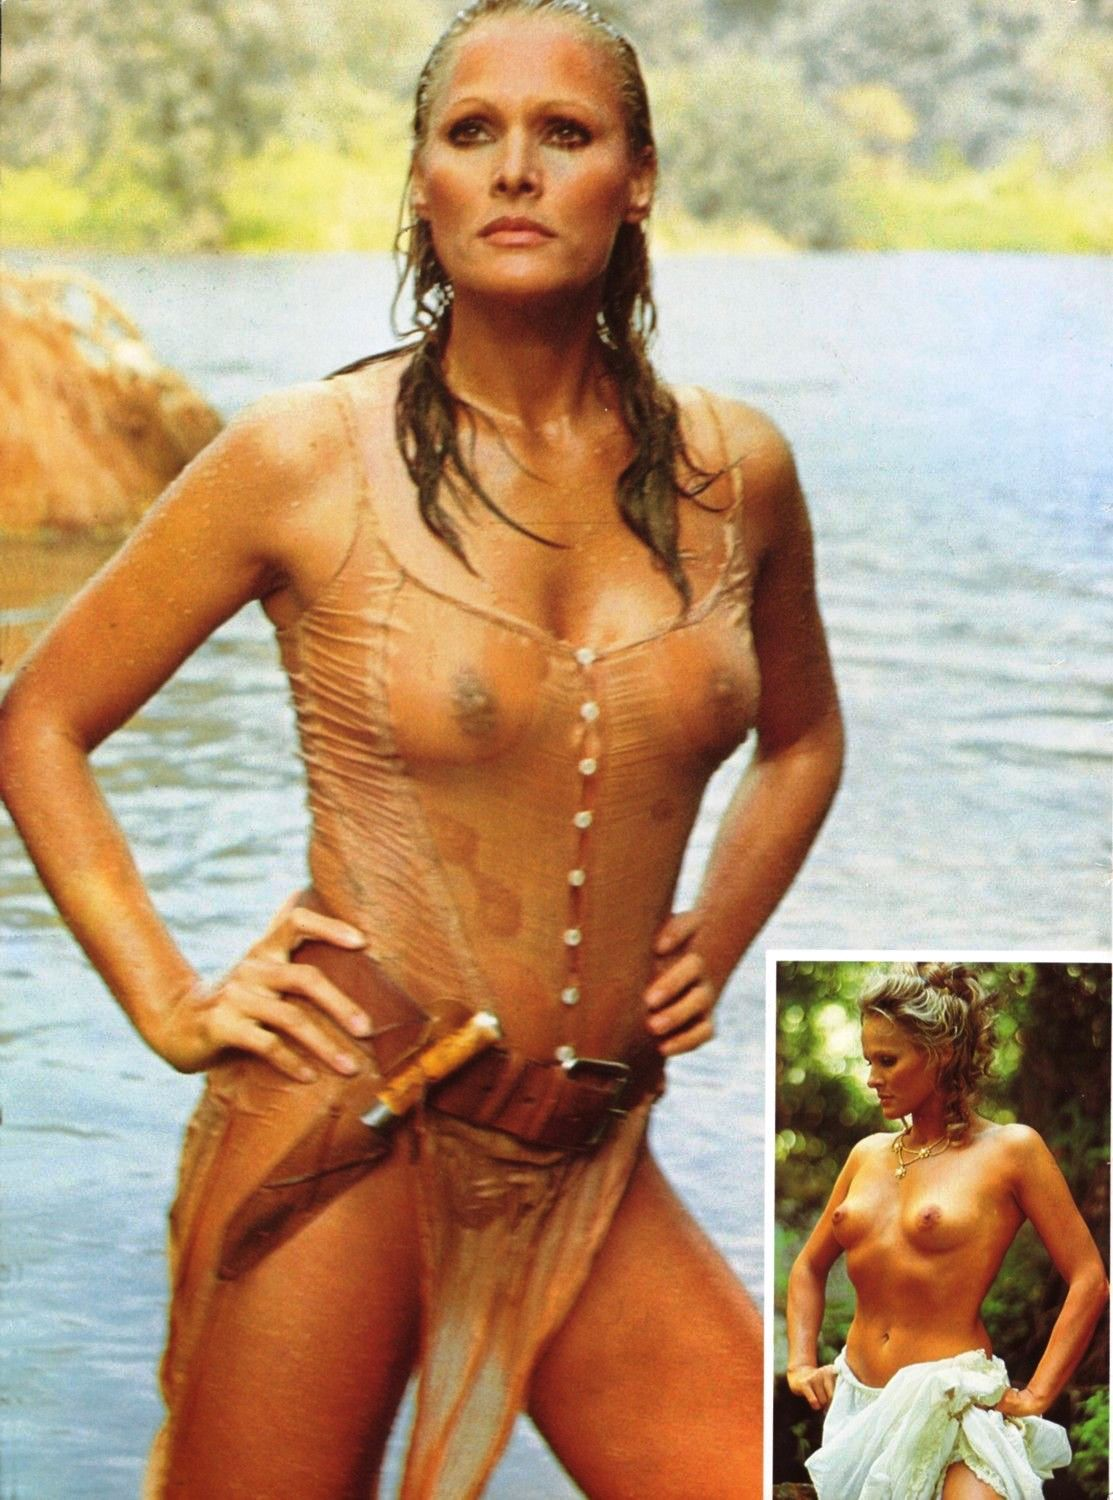 Nude Pictures Of Ursula Andress